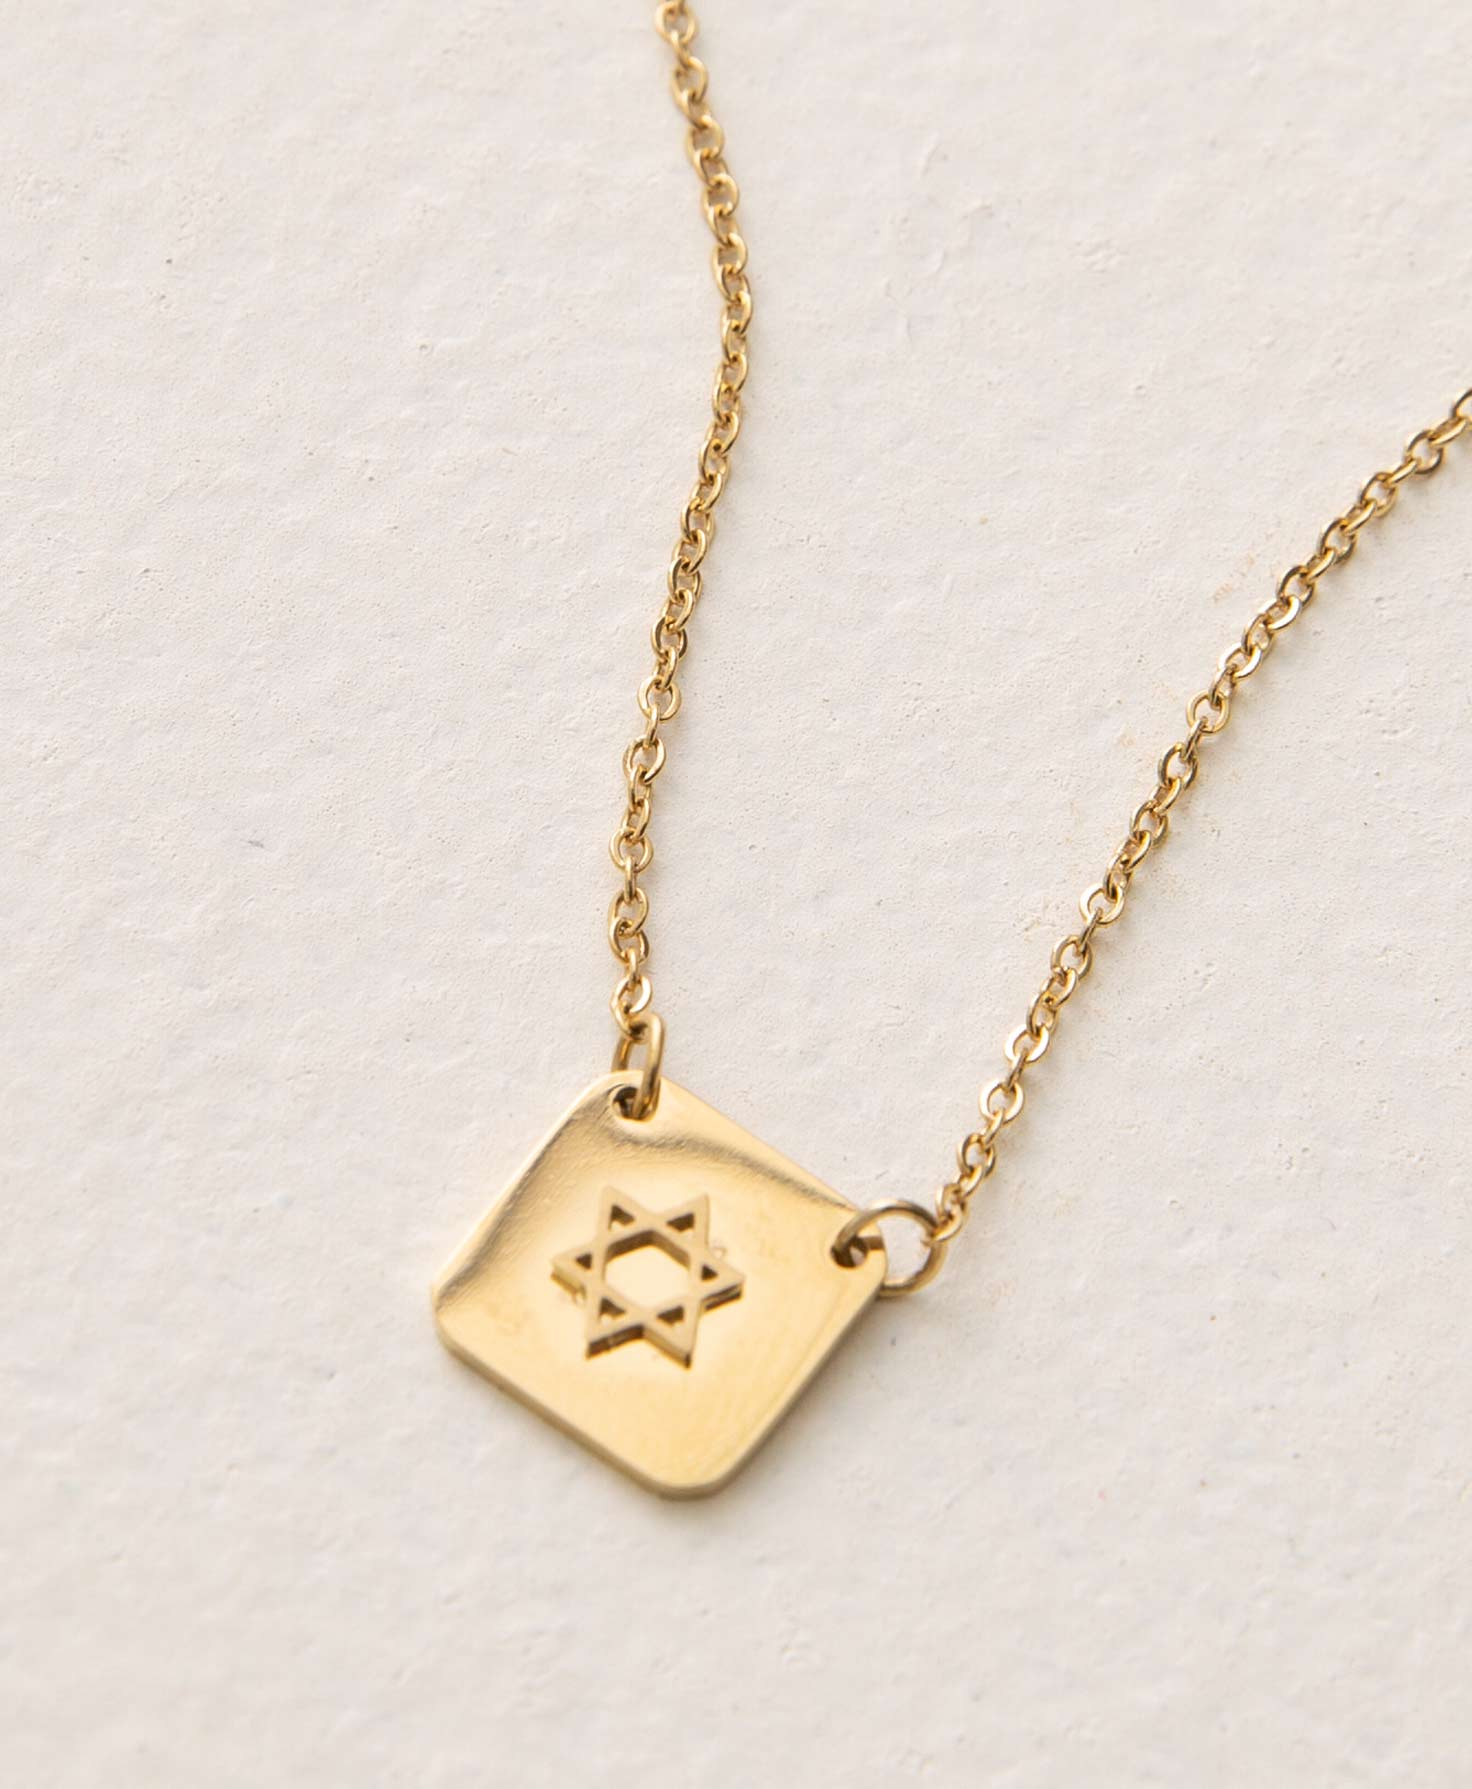 The Faithful Necklace rests on a white background. It features a gold chain with a small square pendant at the bottom. The pendant is connected to either side of the chain via metal jump rings. It has a shiny finish and features a raised Star of David emblem at its center.